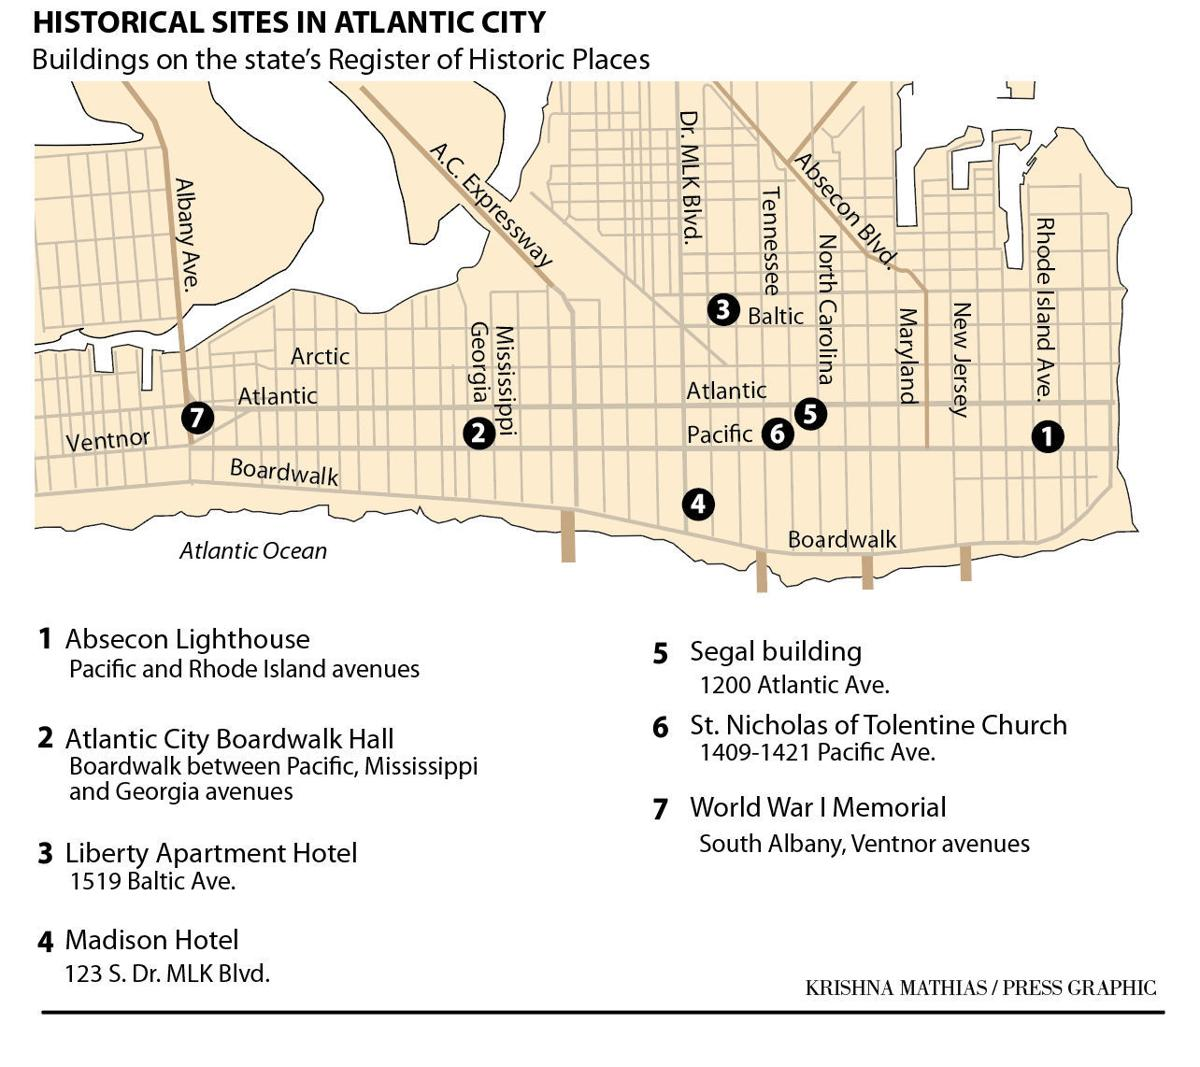 Historical sites in Atlantic City